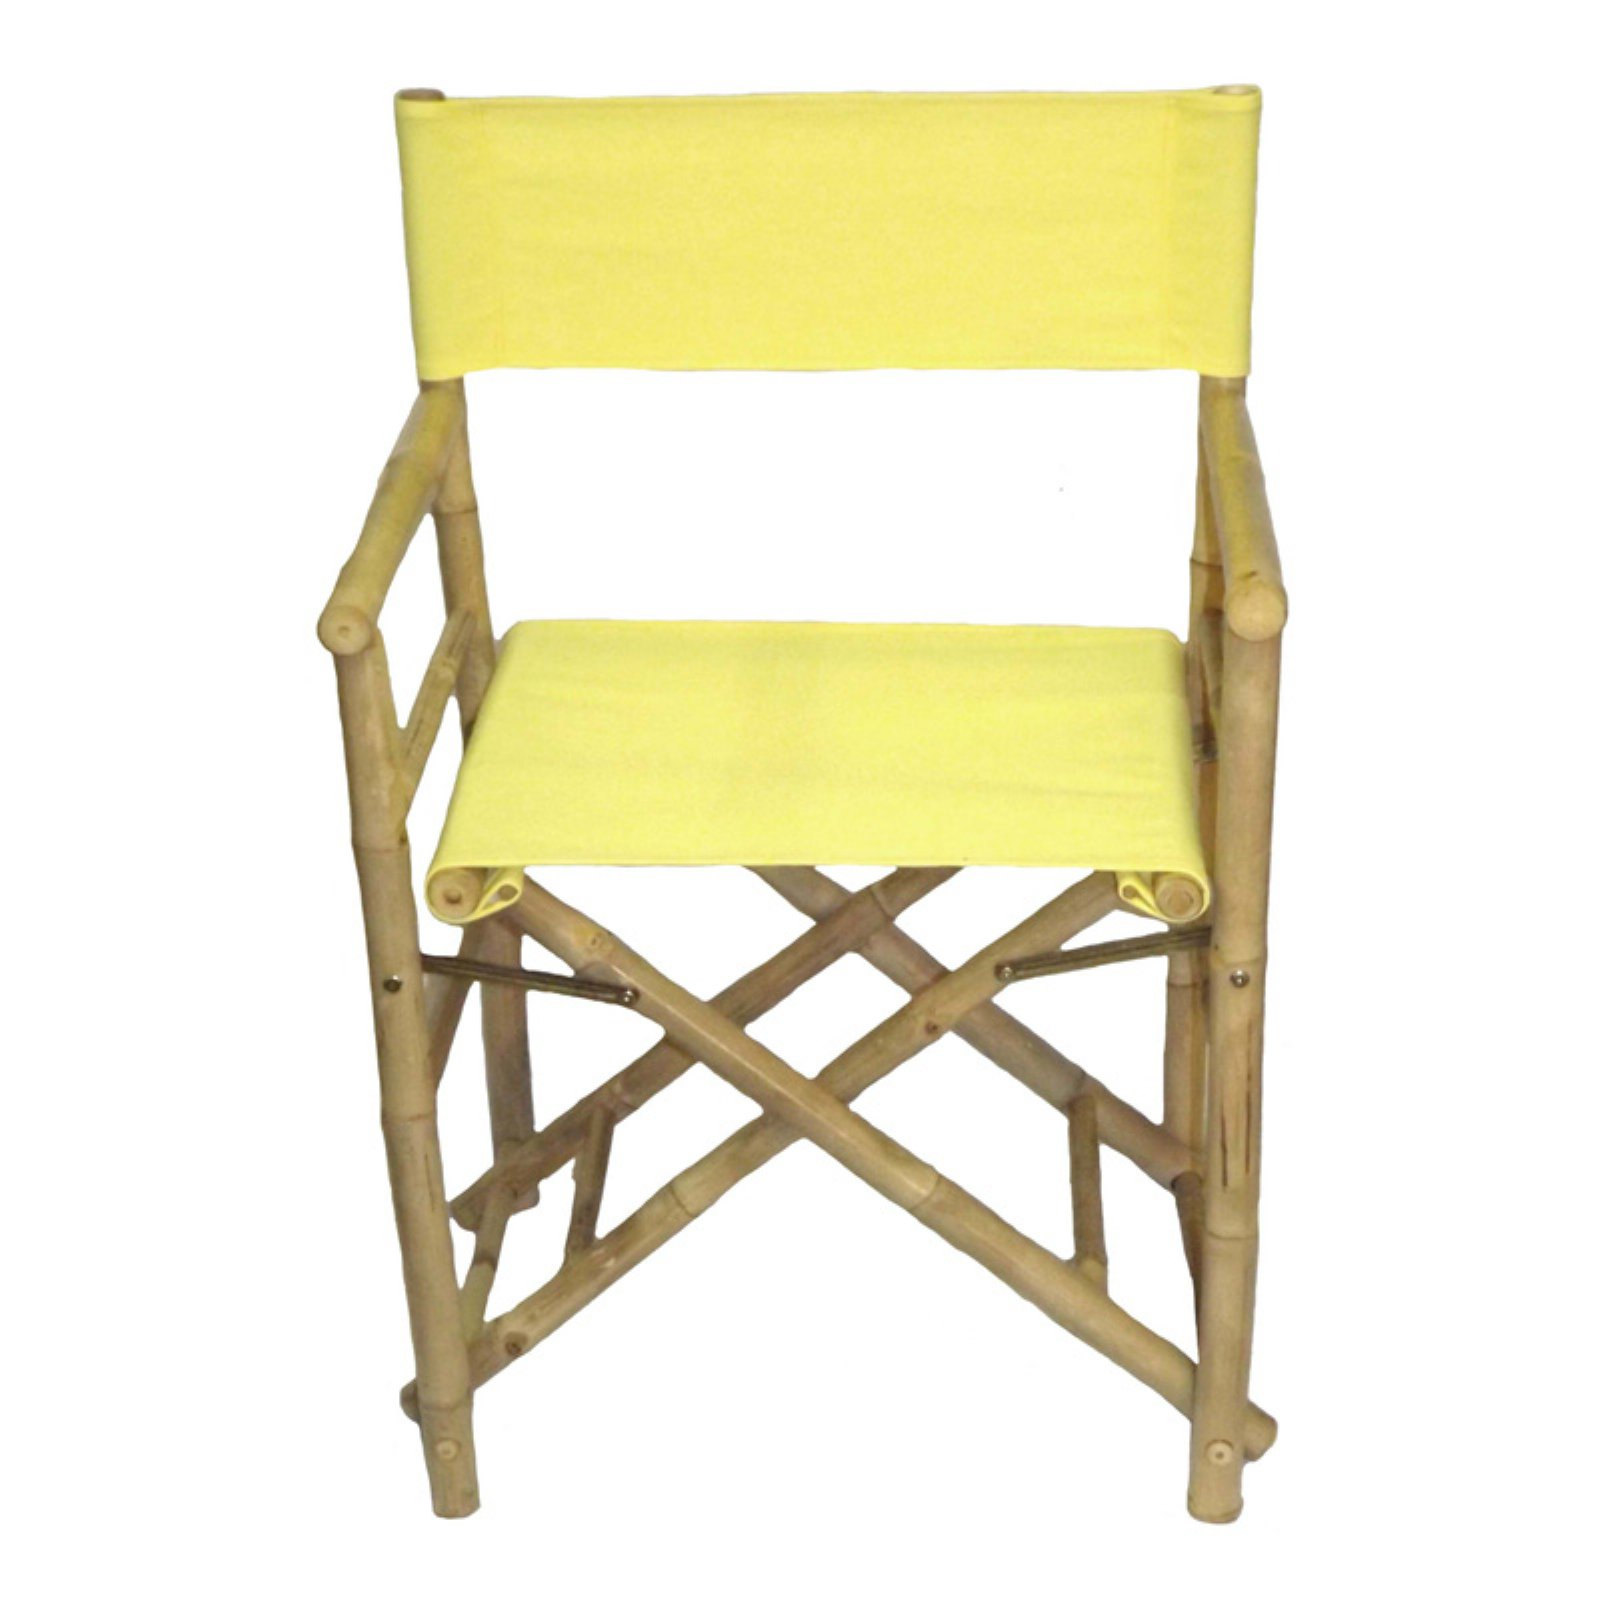 bamboo directors chairs high chair toy bamboo54 folding low with canvas cover set of 2 walmart com